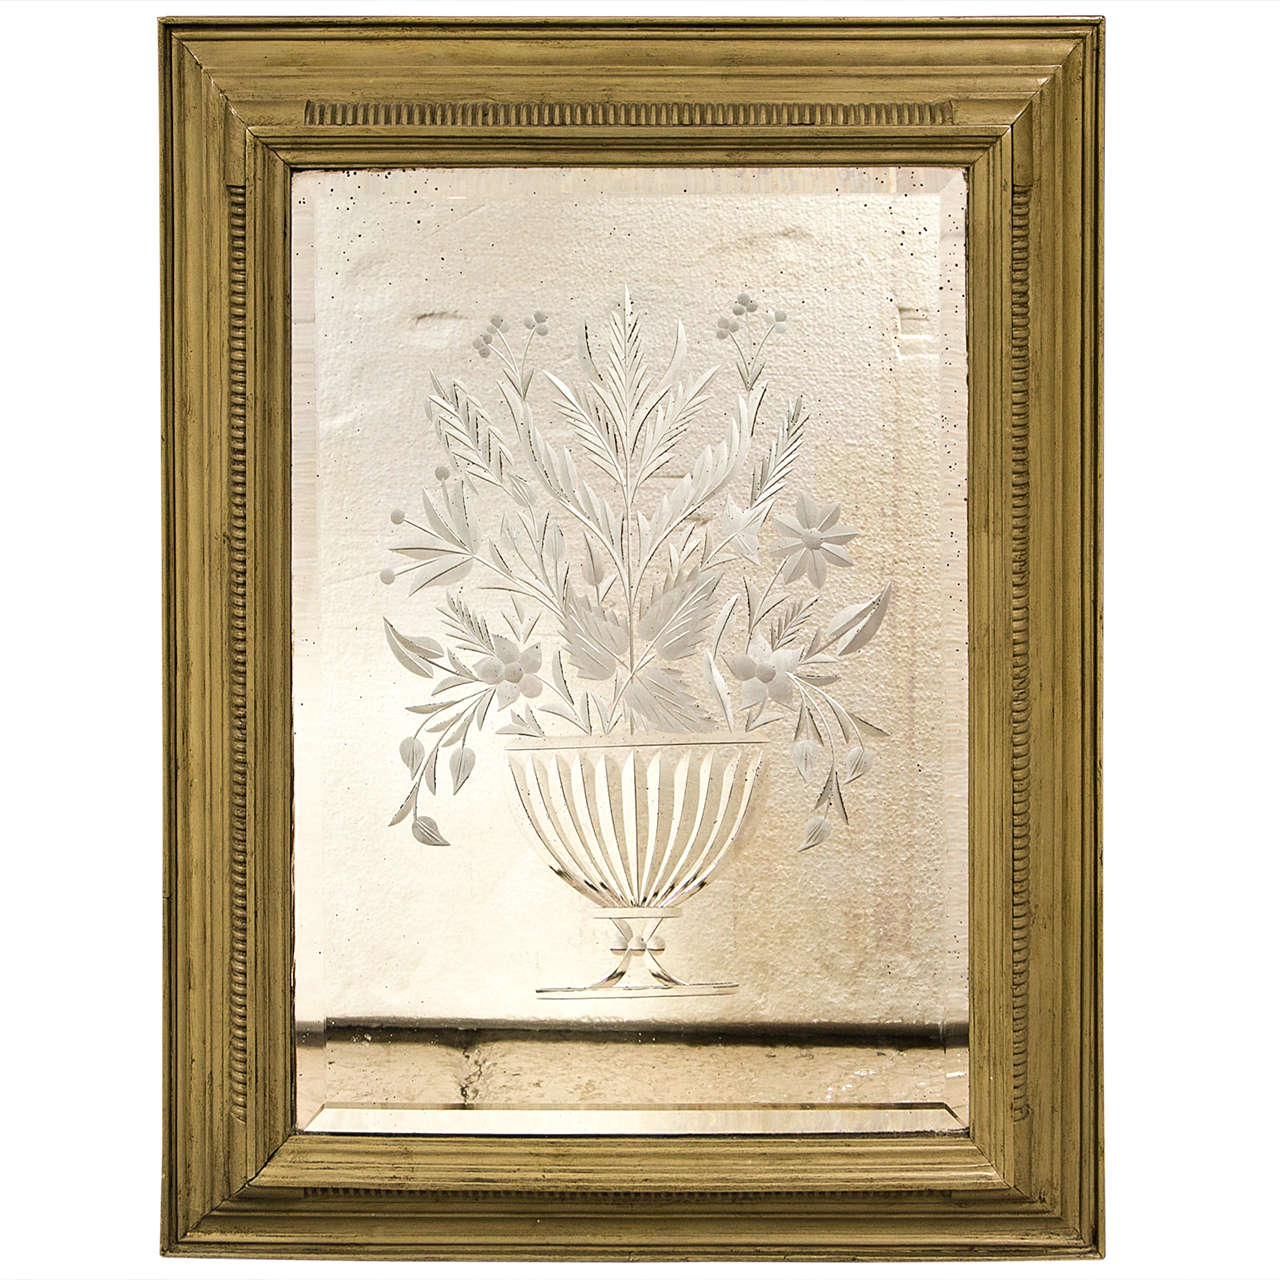 Decorative framed etching mirror at 1stdibs for Ornamental mirrors